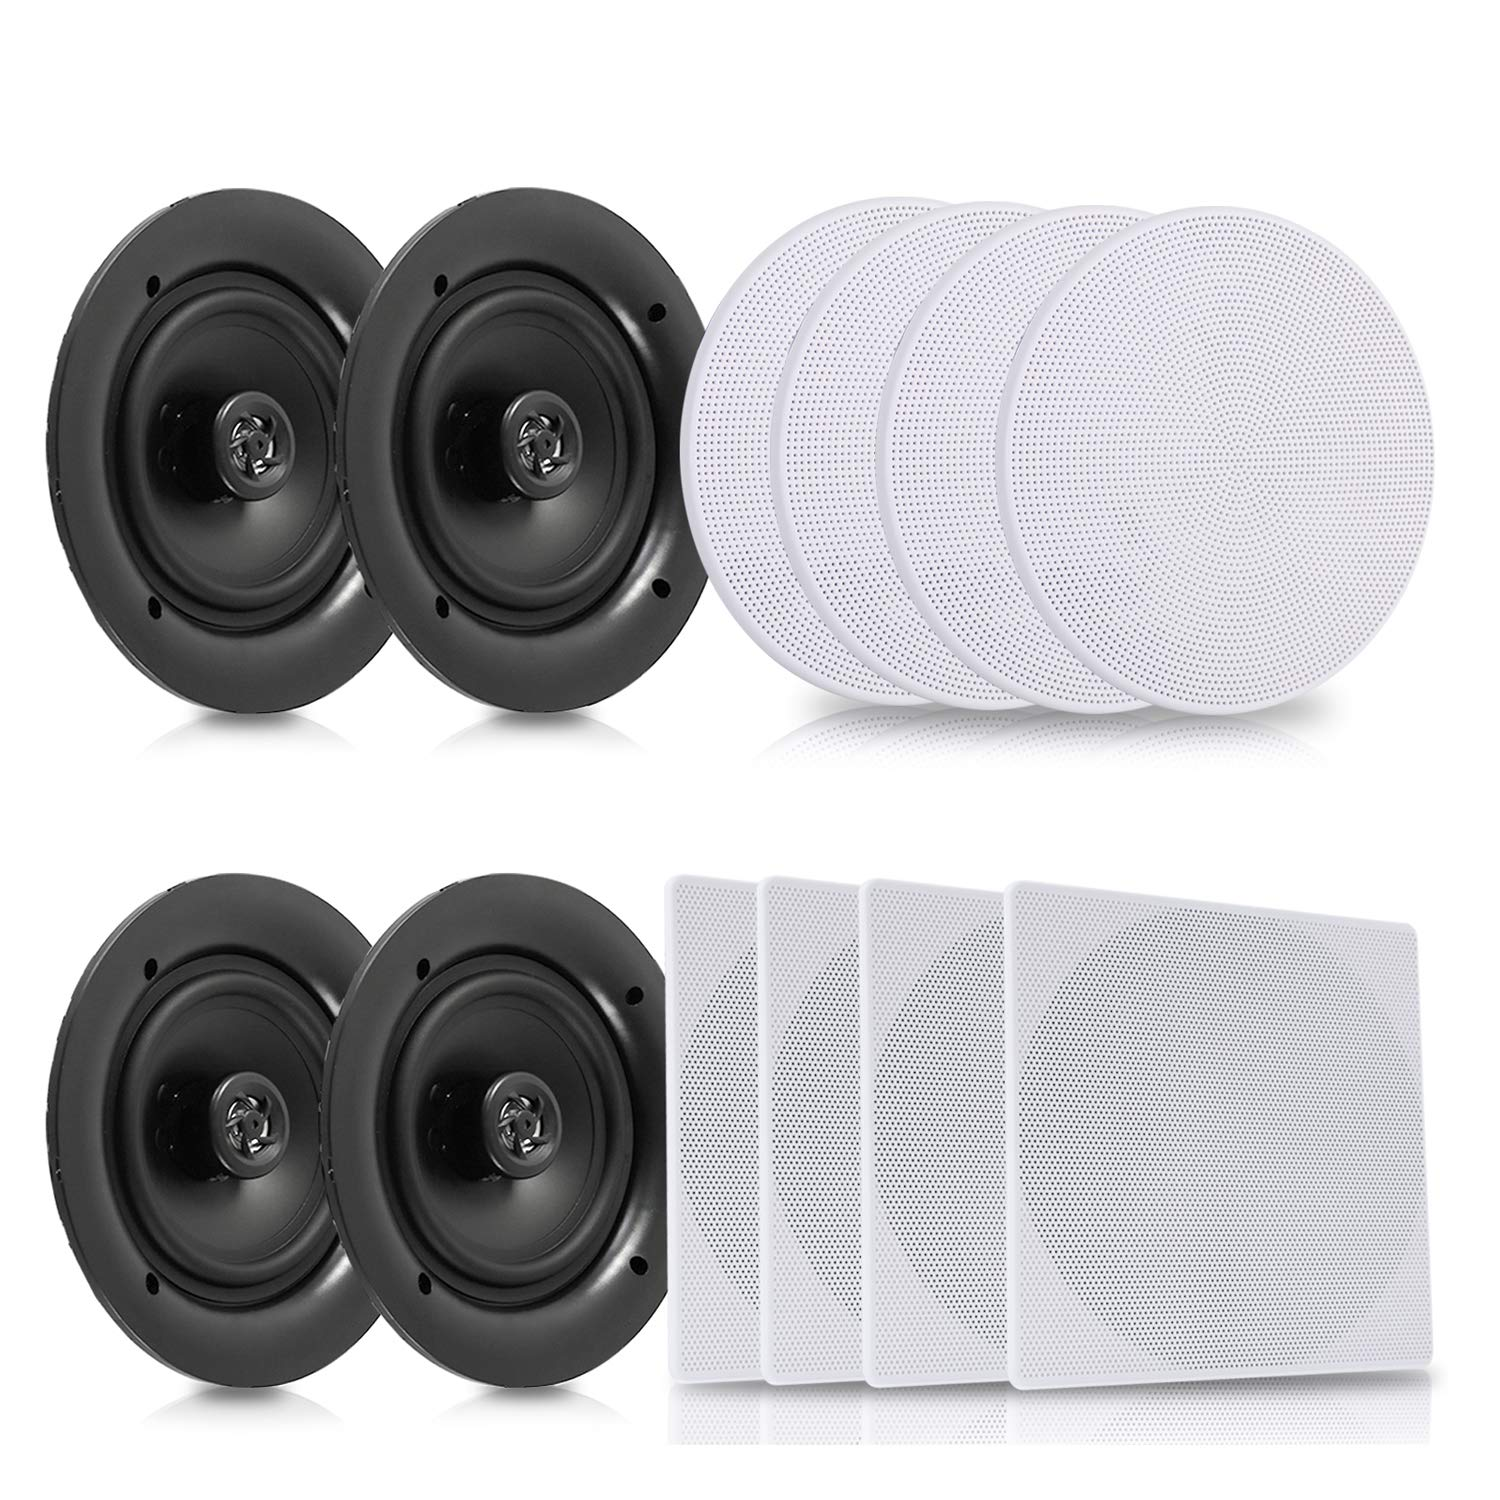 """Pyle 5.25"""" 4 Bluetooth Flush Mount In-wall In-ceiling 2-Way Speaker System Quick Connections Changeable Round/Square Grill Polypropylene Cone & Tweeter Stereo Sound 4 Ch Amplifier 150 Watt (PDICBT256)"""